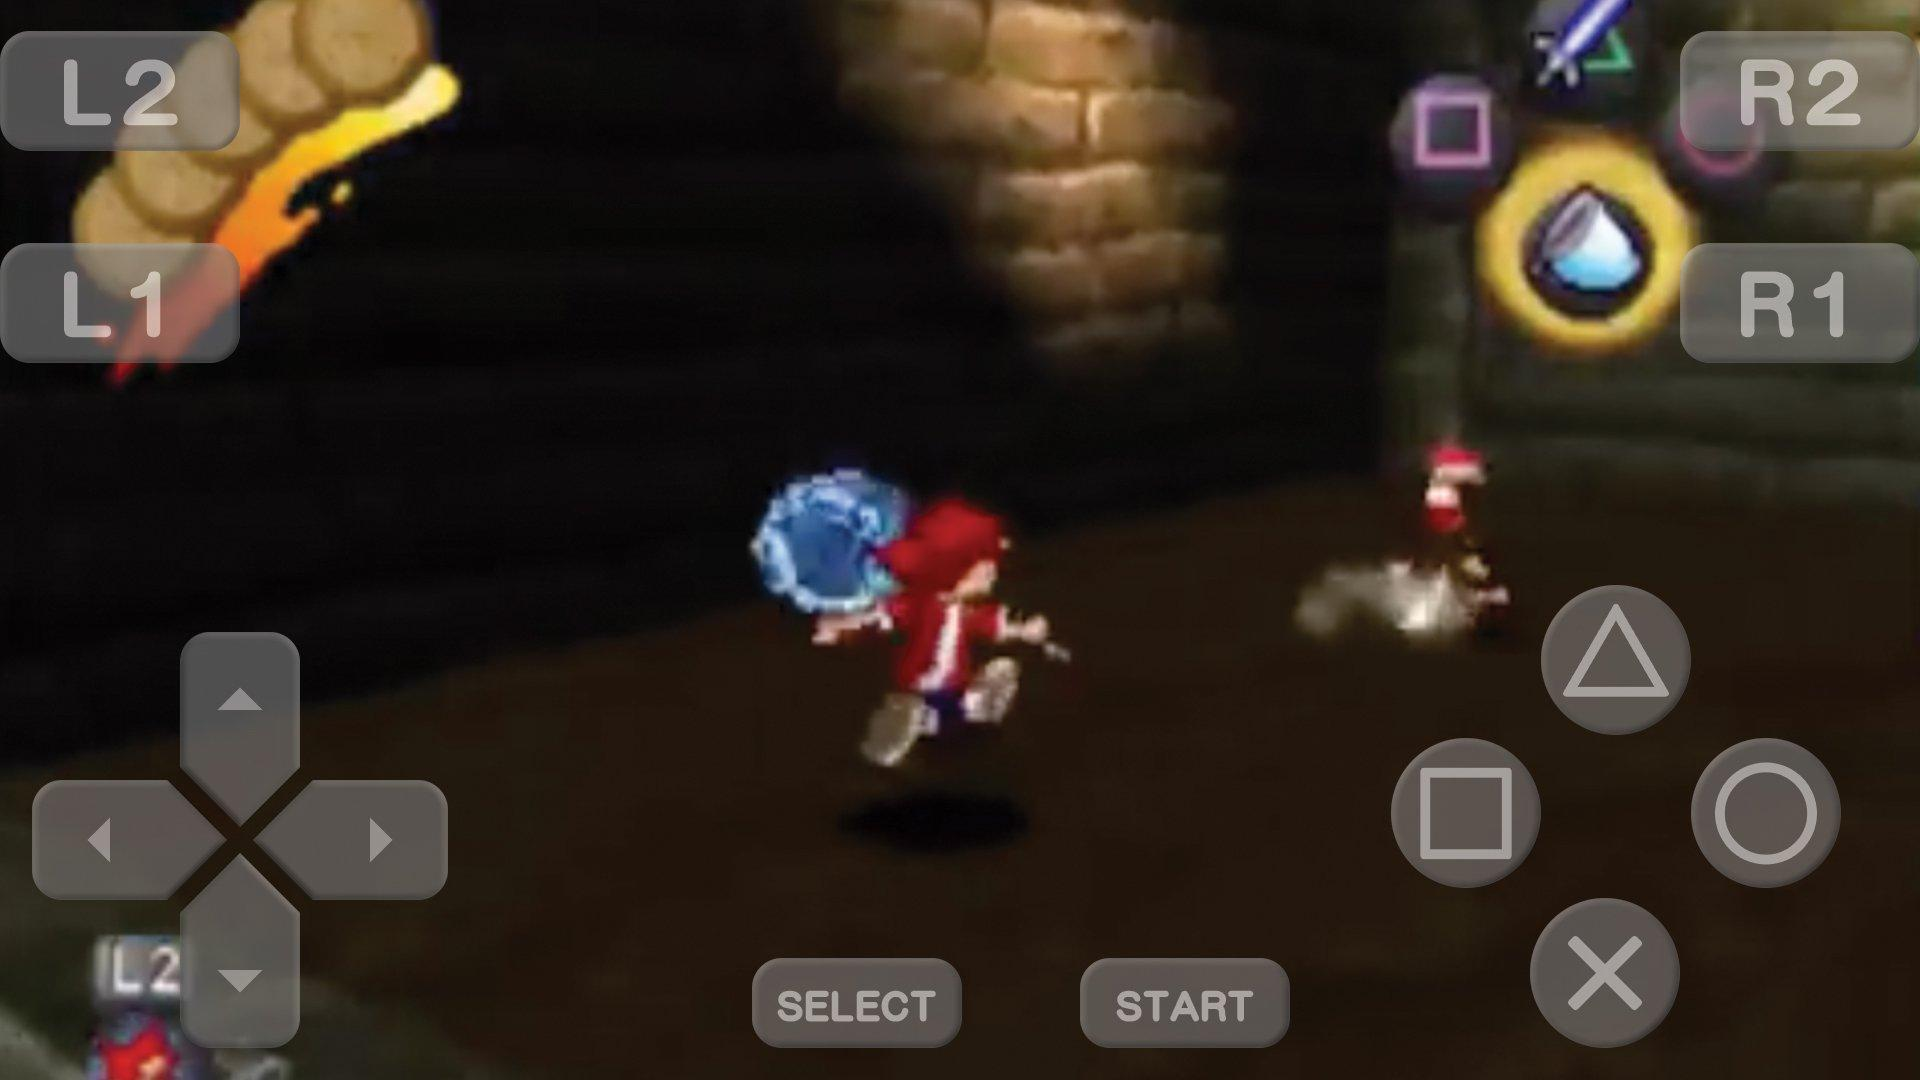 free download psx emulator for android